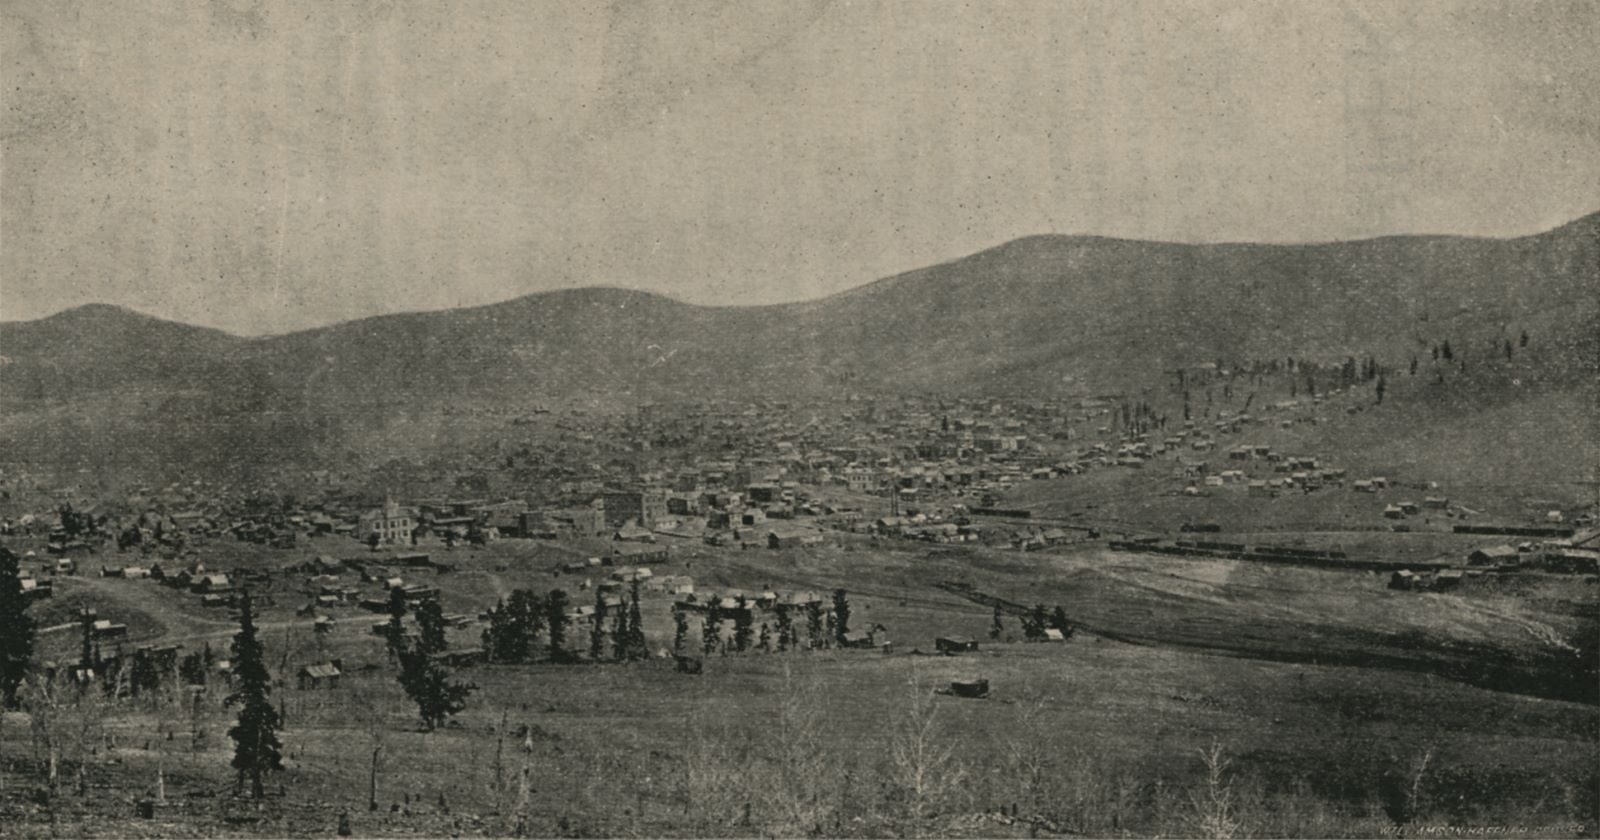 City of Cripple Creek Looking East and Showing Gold and Globe Hills.